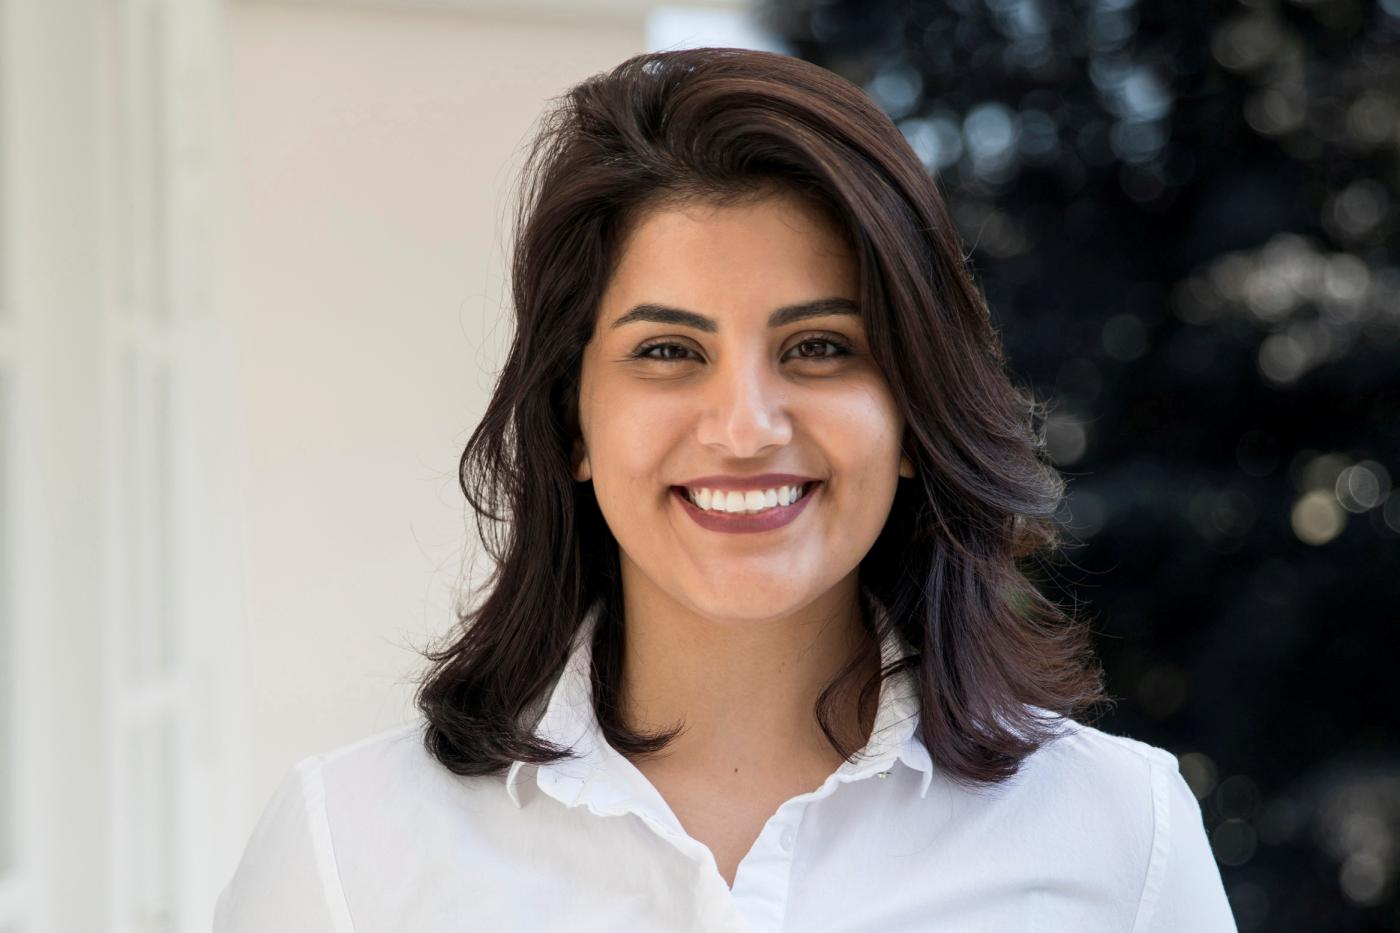 Loujain al-Hathloul is a Nobel prize-nominated activist who has allegedly been tortured while in prison